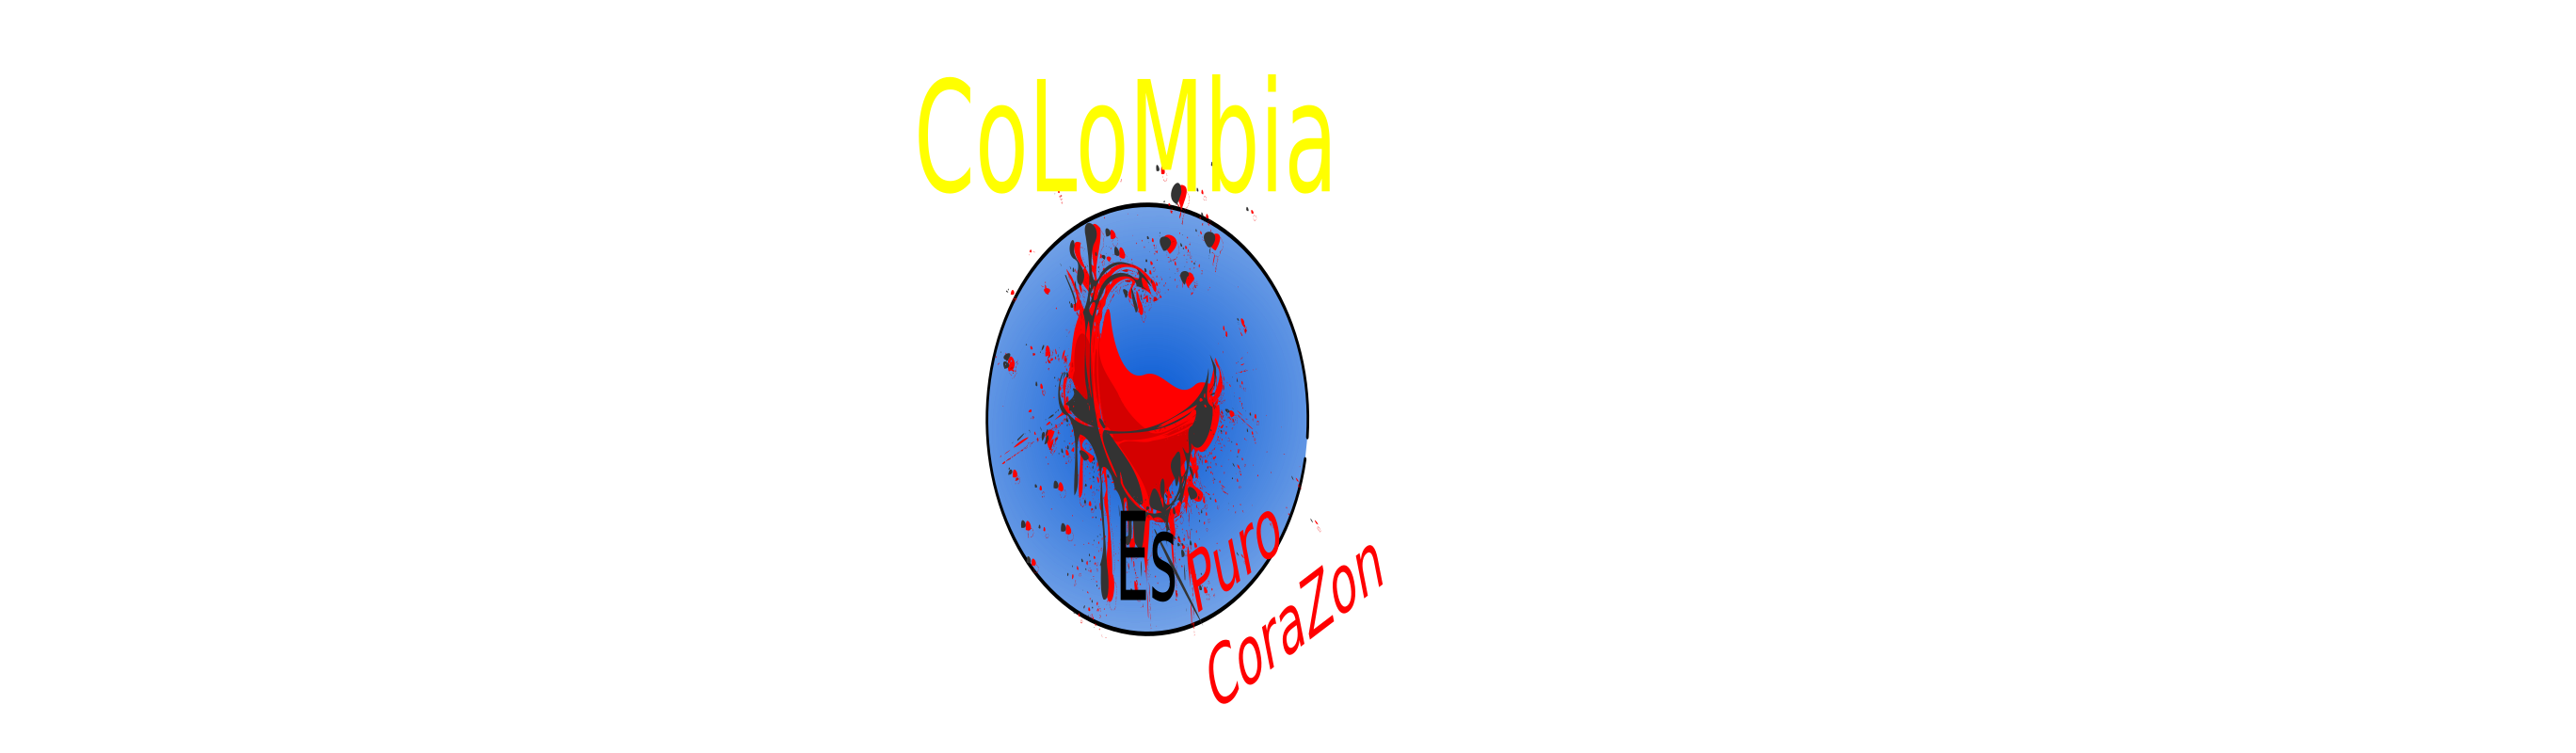 Colombia es Pasion by Bacd94 - Colombia es Pasion